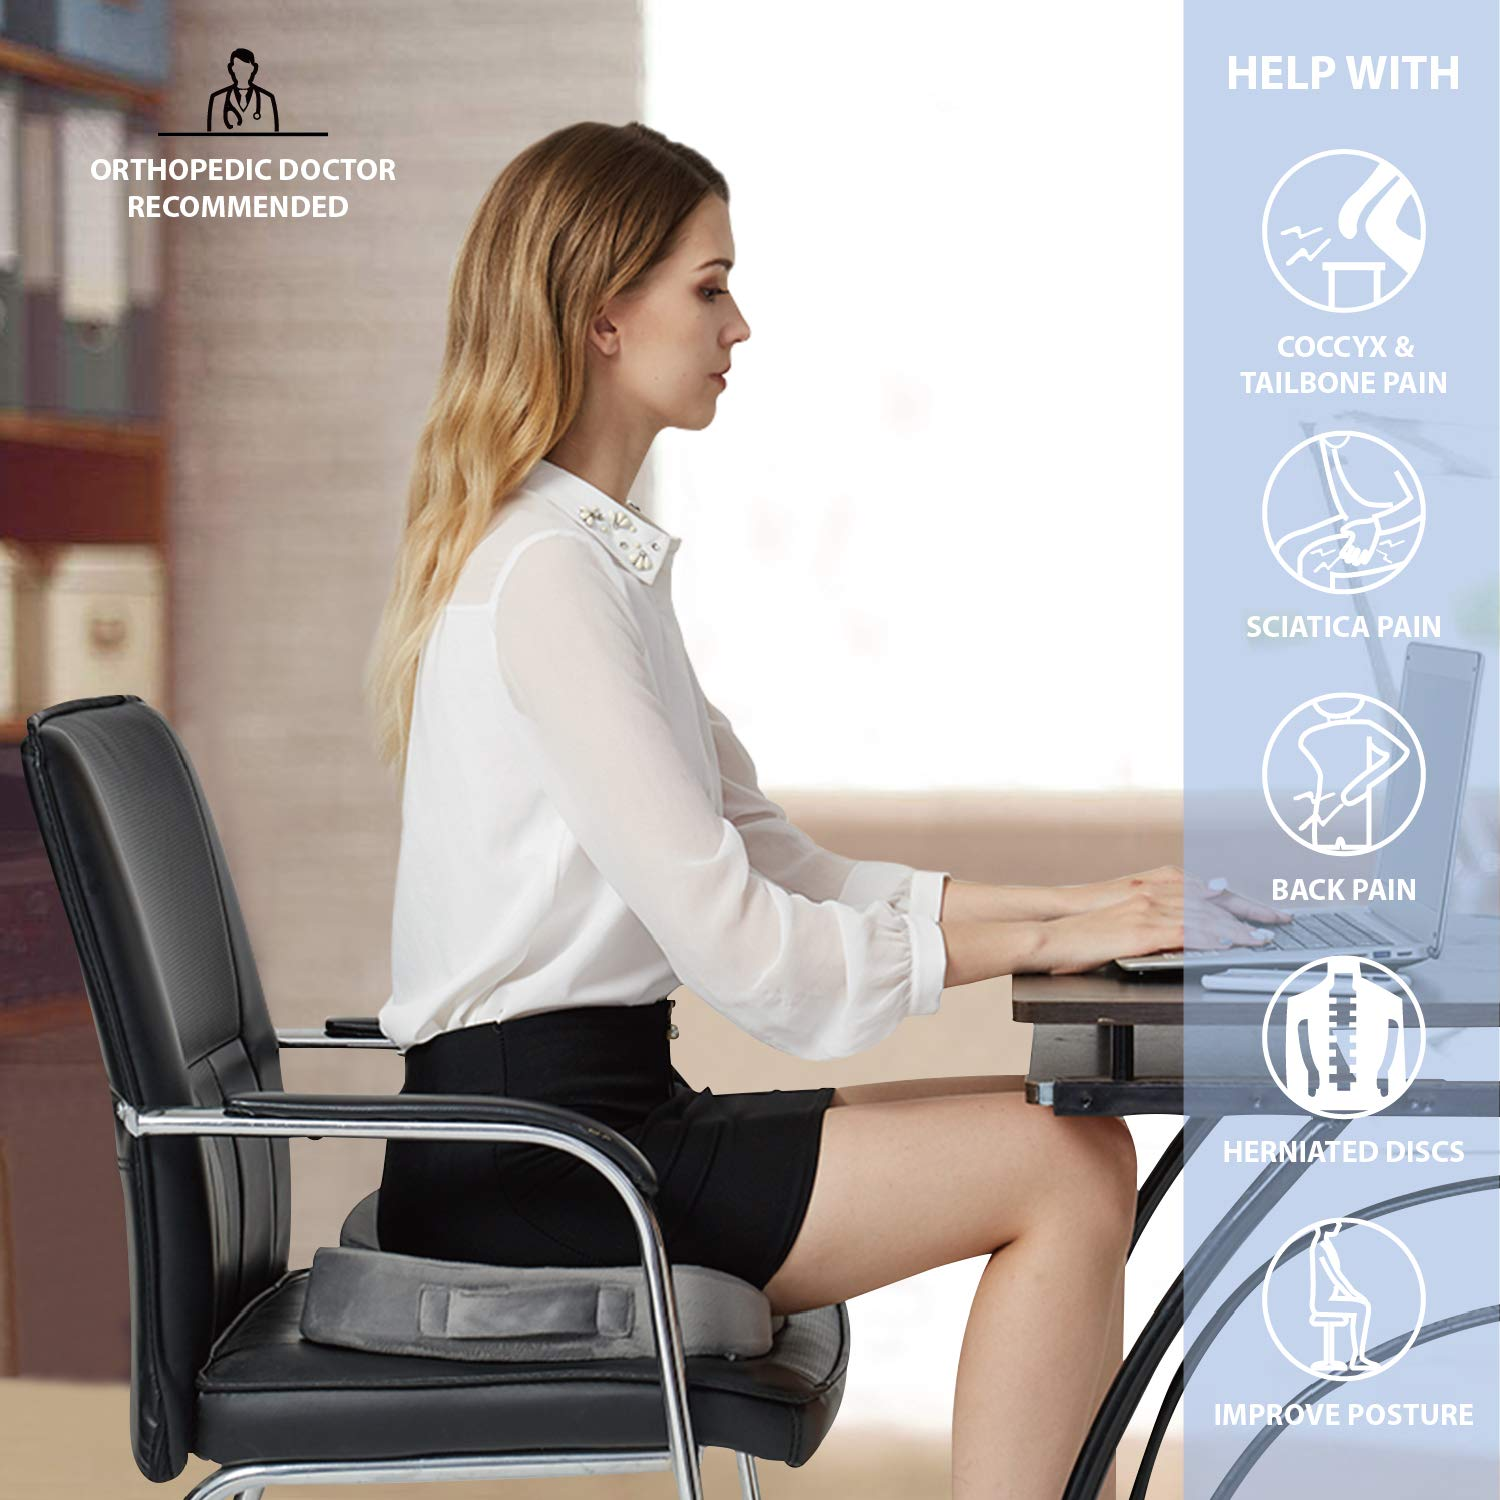 Office Chair Wheelchair Car Seat Cushion Sciatica Back Pain Relief Gray Orthopedic Memory Foam Coccyx Seat Cushion Tailbone Pain Back Seat Cushions Office Products